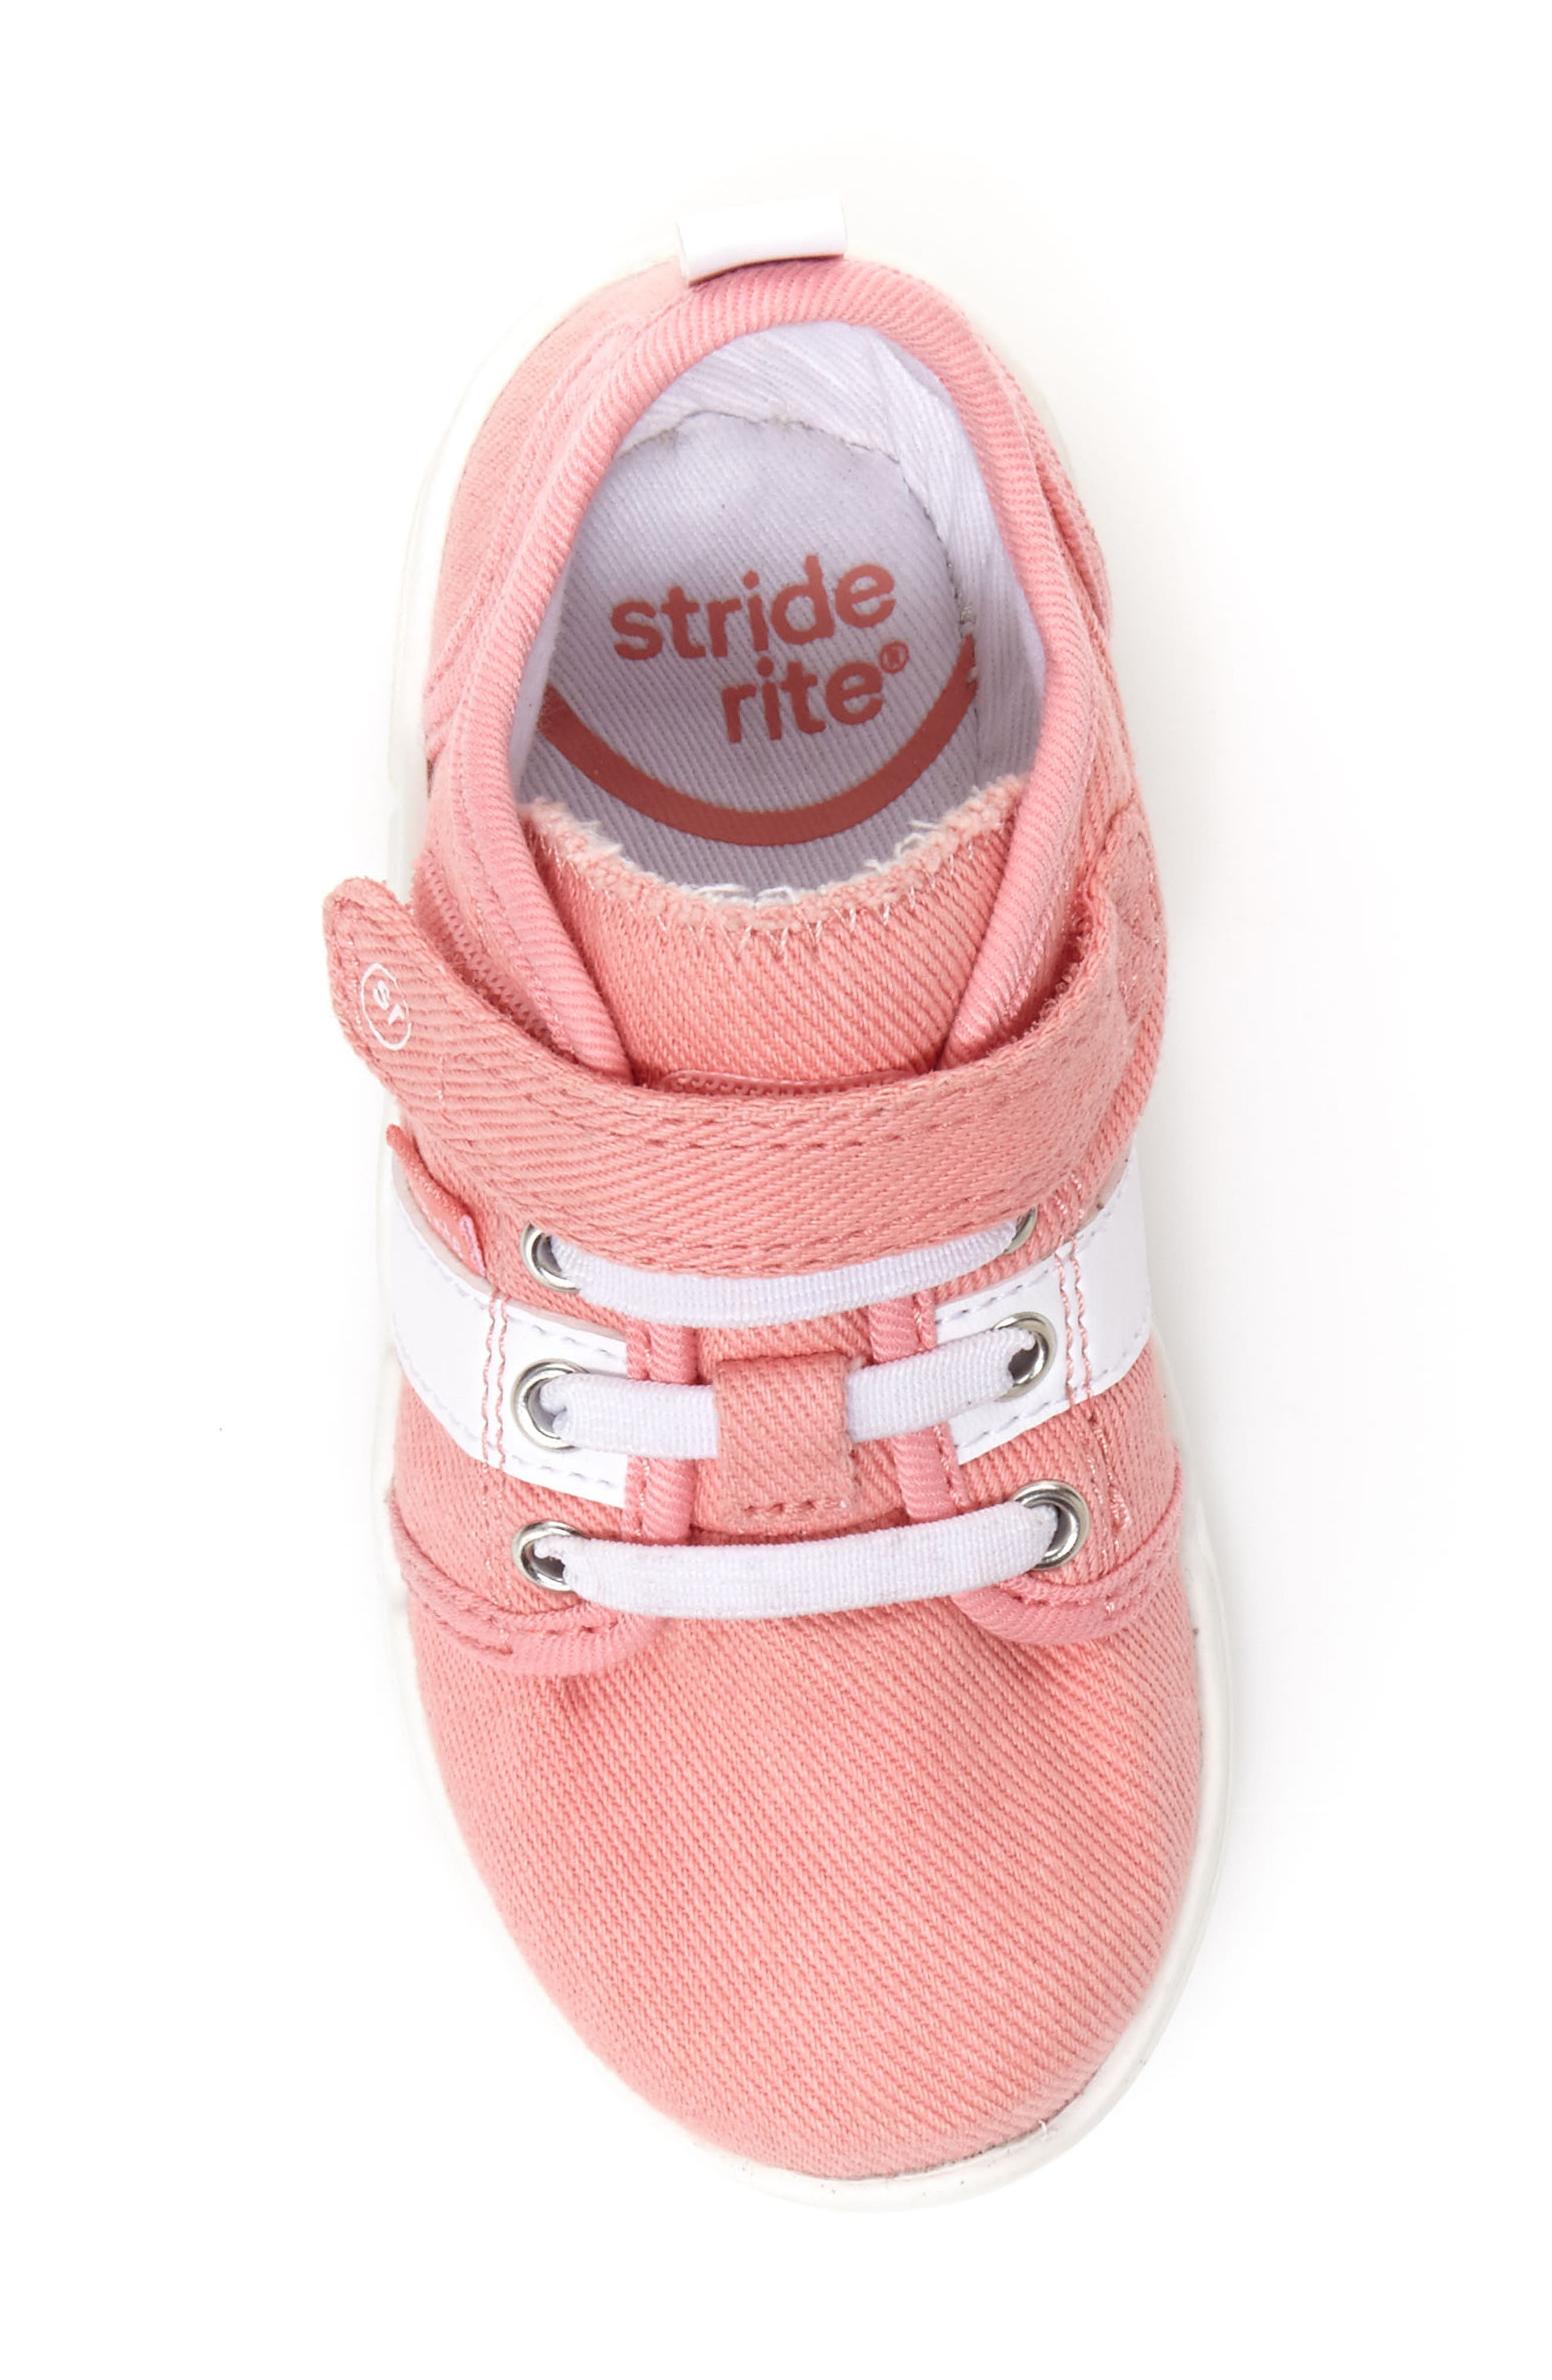 Dixon Sneaker,                             Alternate thumbnail 5, color,                             Pink